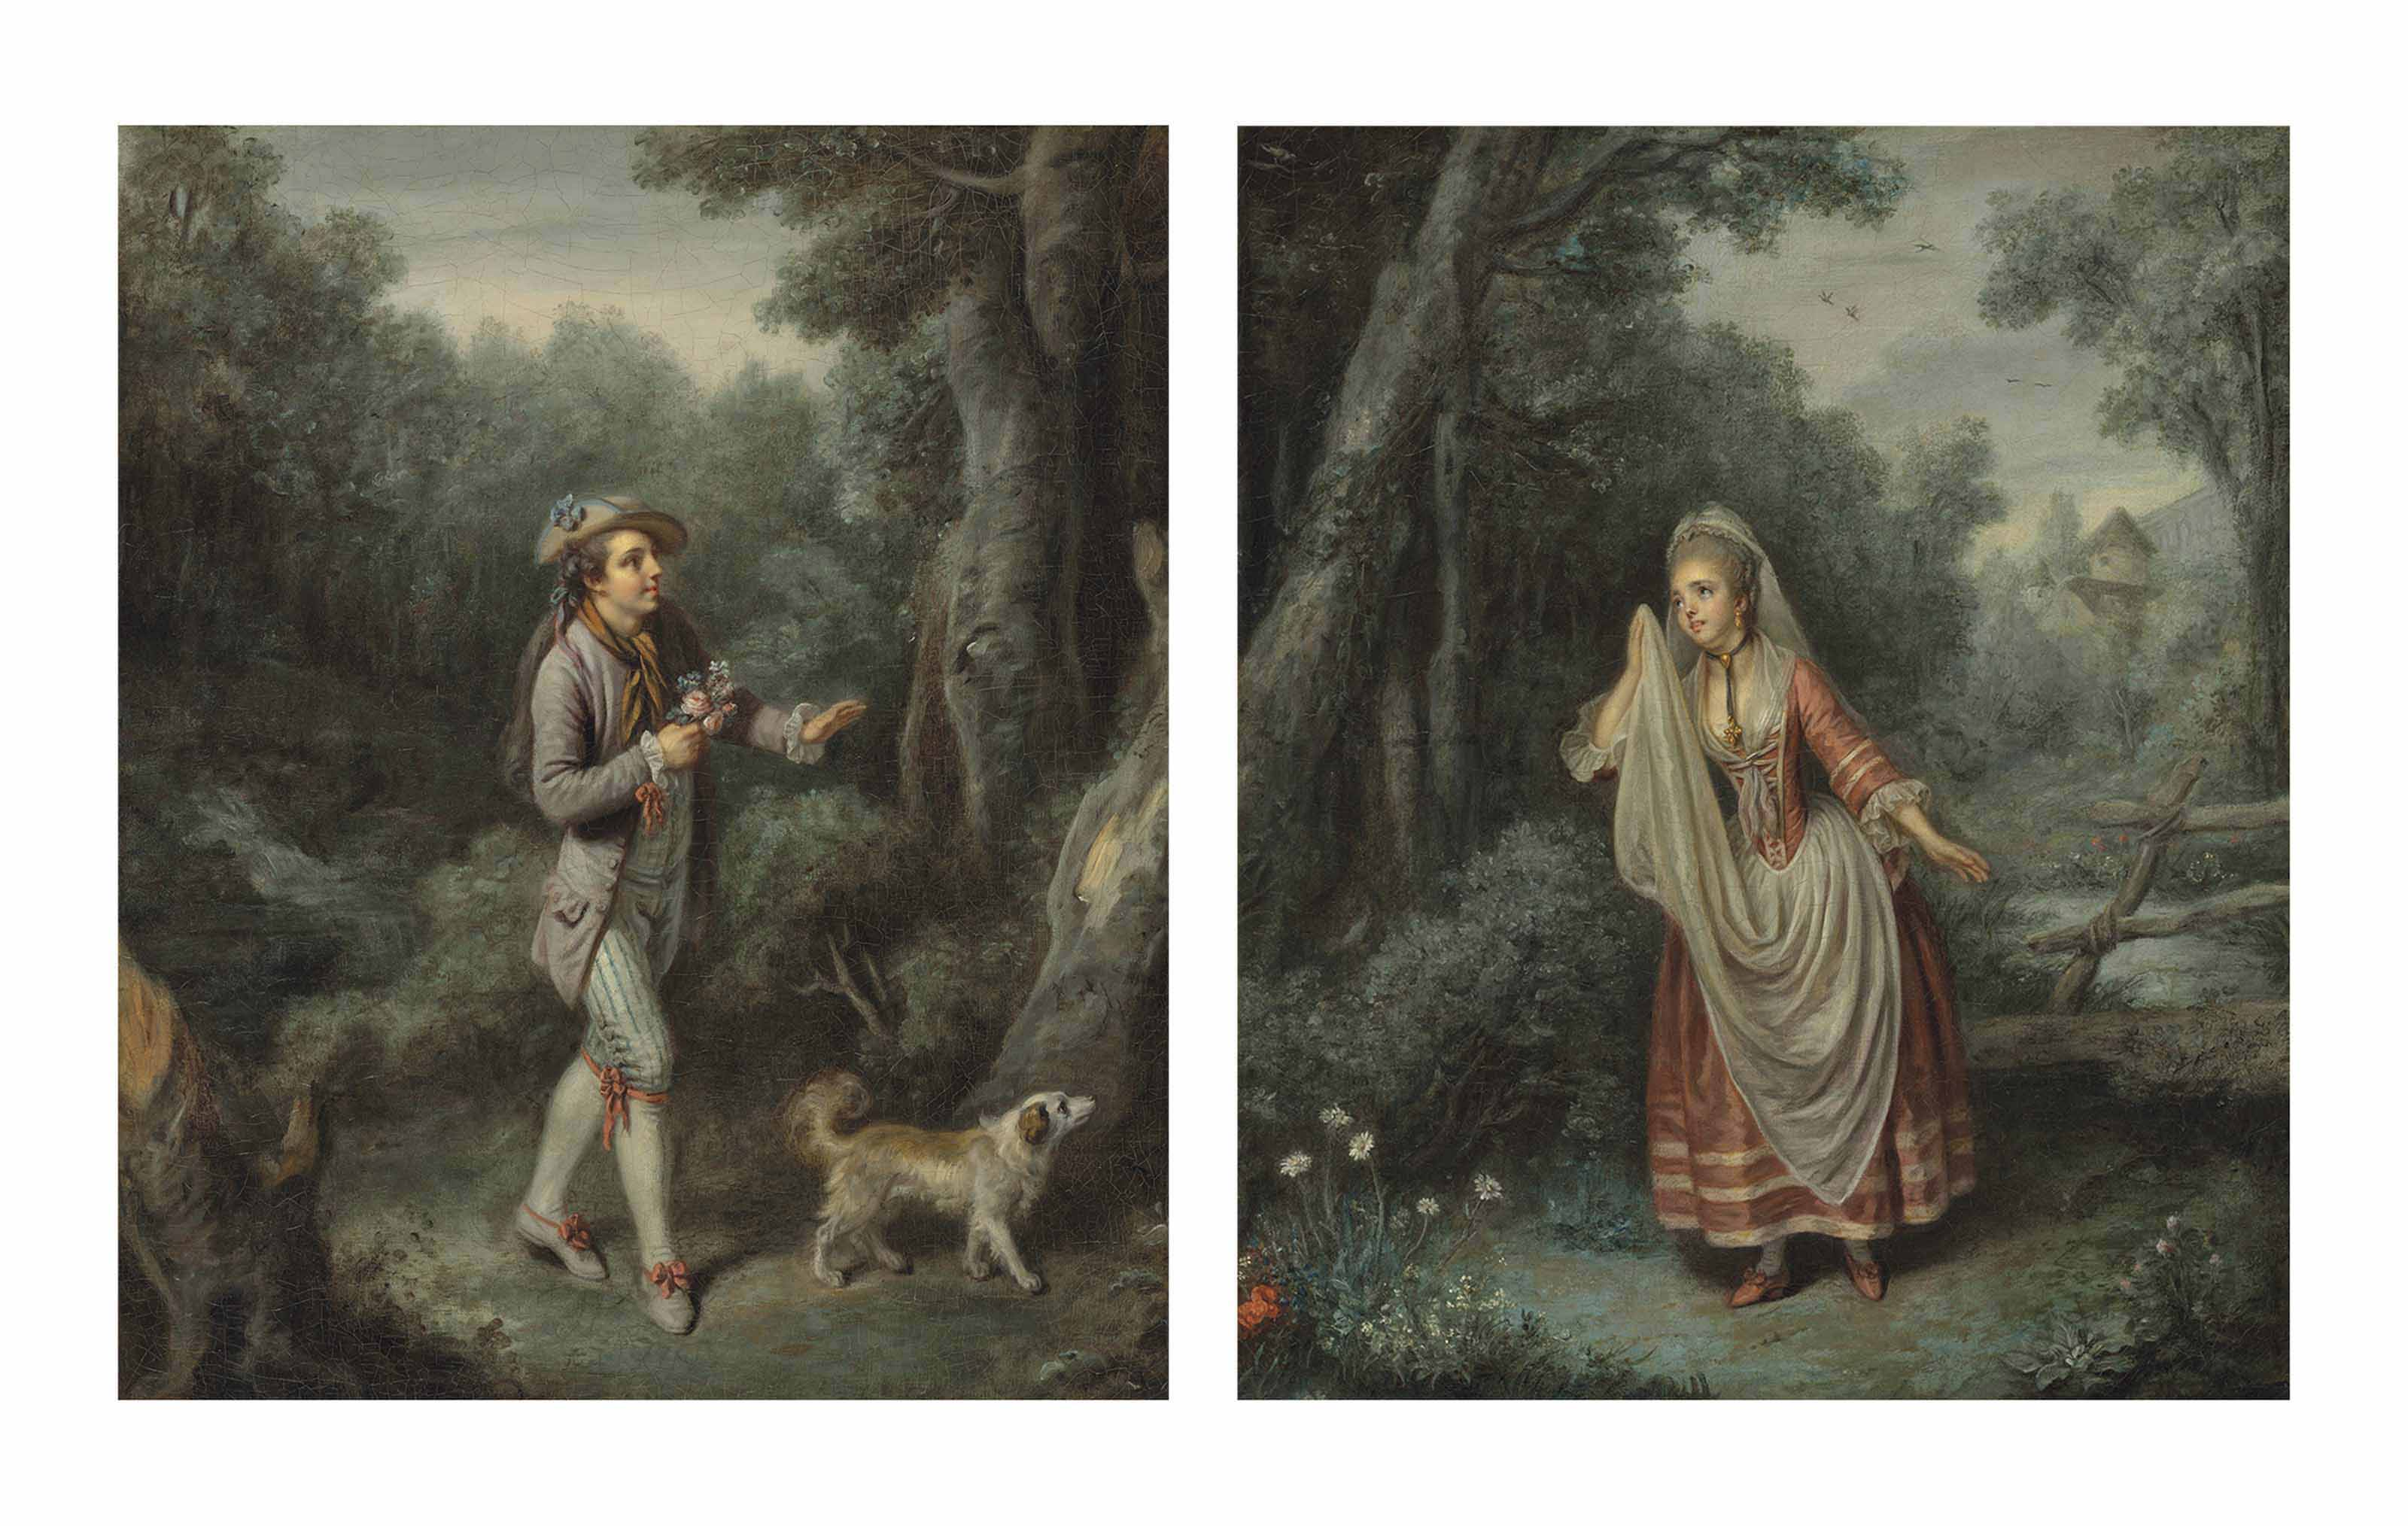 greuze 1785-90 lubin-and-annette_-a-pastoral-comedy-based-on-one-of-the-contes-moraux-of-jean-françois-marmontel